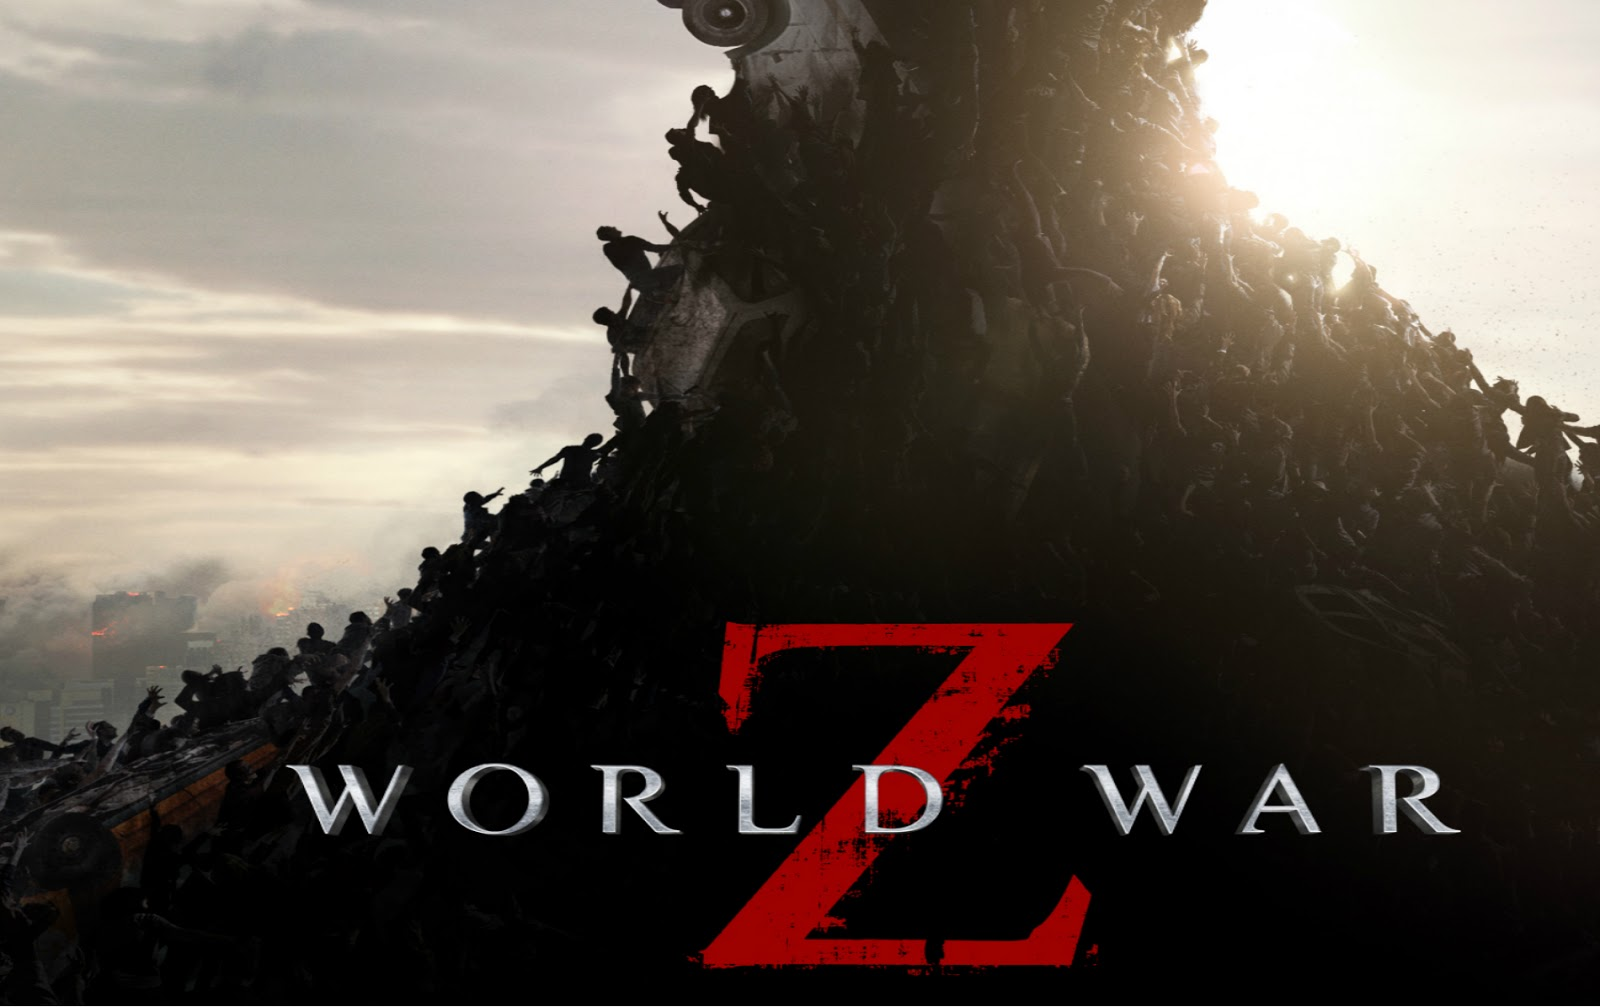 World war z poster hd : Video de one piece pirate warriors 2